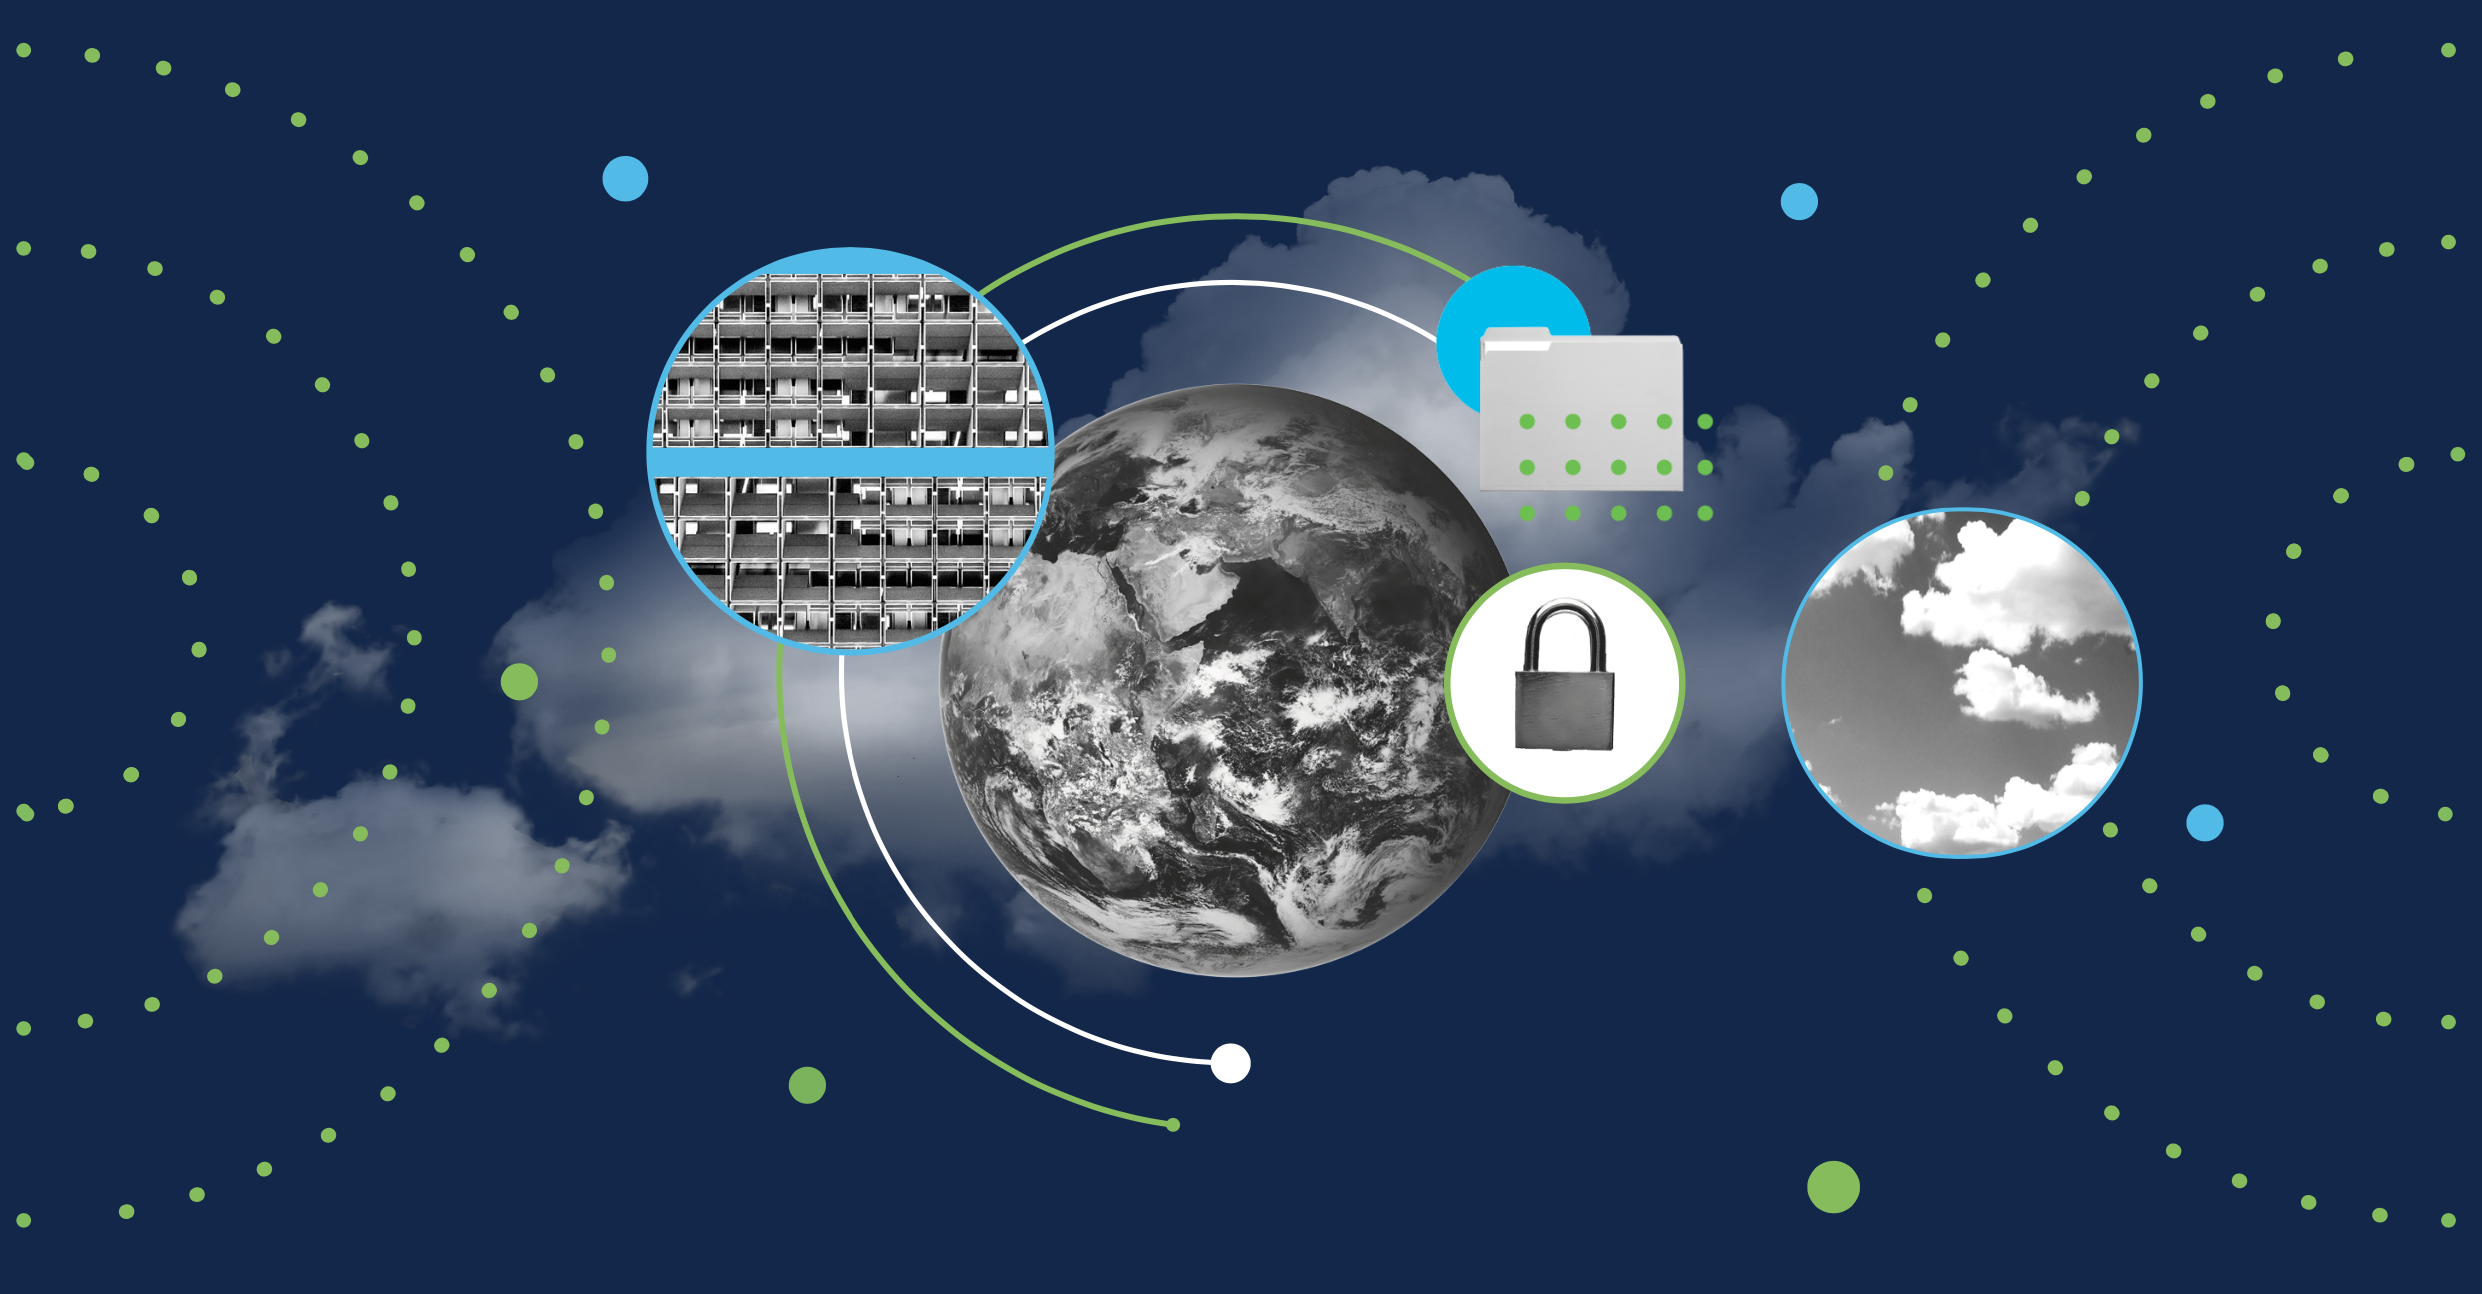 Beef up your ransomware defense with Cisco Secure Choice